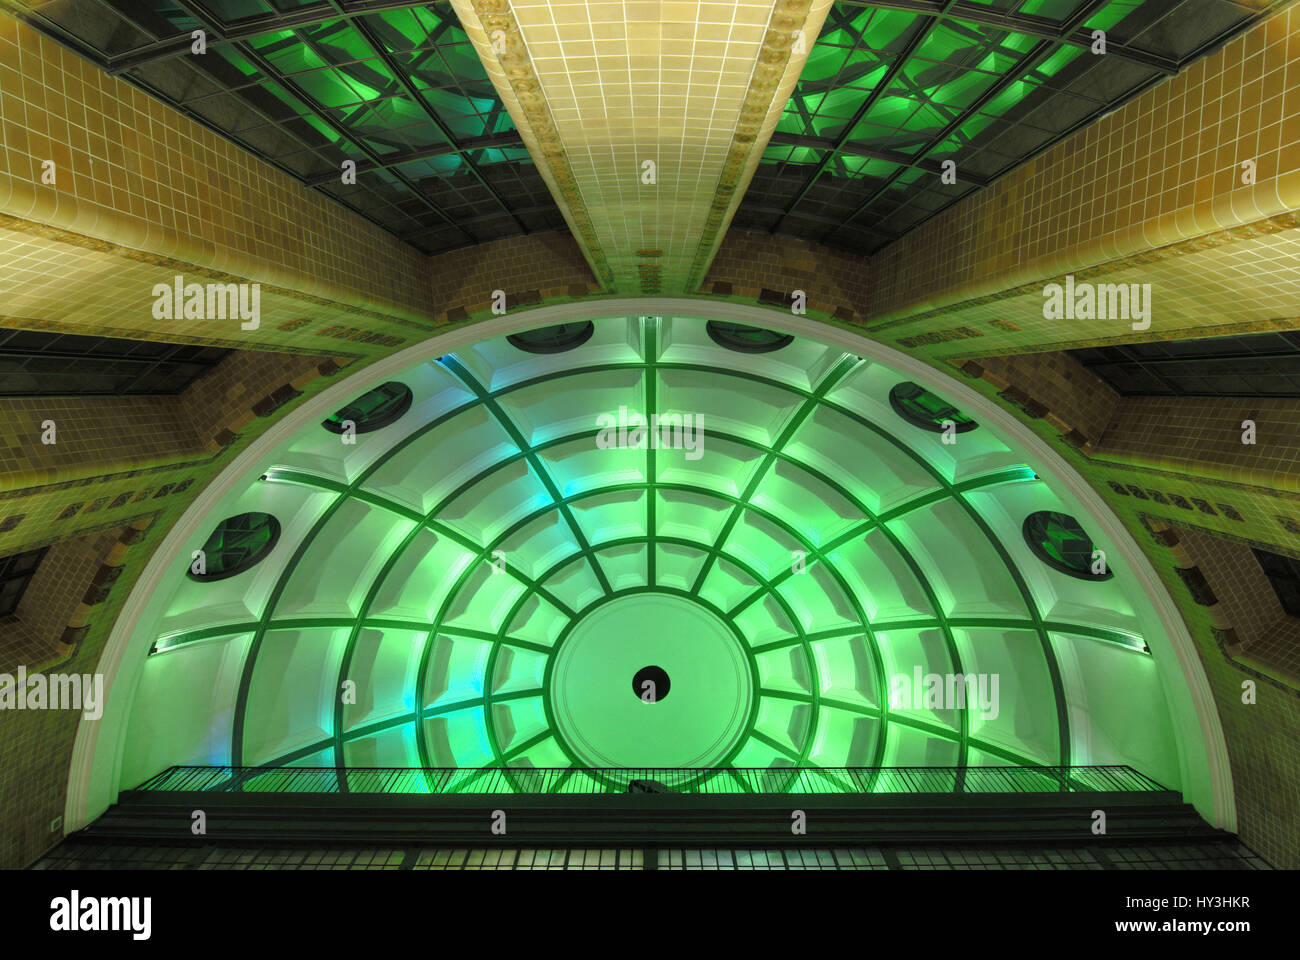 Indoor photograph of the old Elbtunnels in Hamburg, Germany, Europe, Innenaufnahme des Alten Elbtunnels in Hamburg, - Stock Image